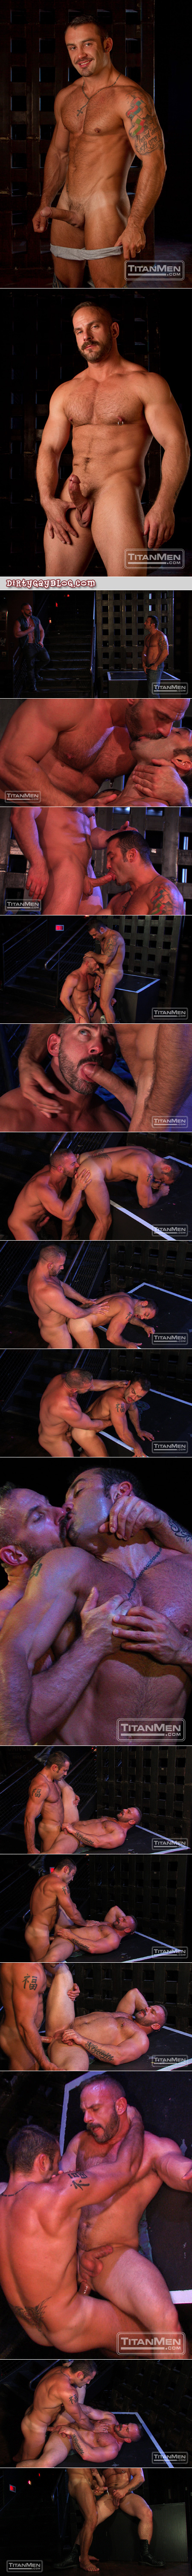 Hairy musclemen fuck each other's asses in a public leather and levi bar.